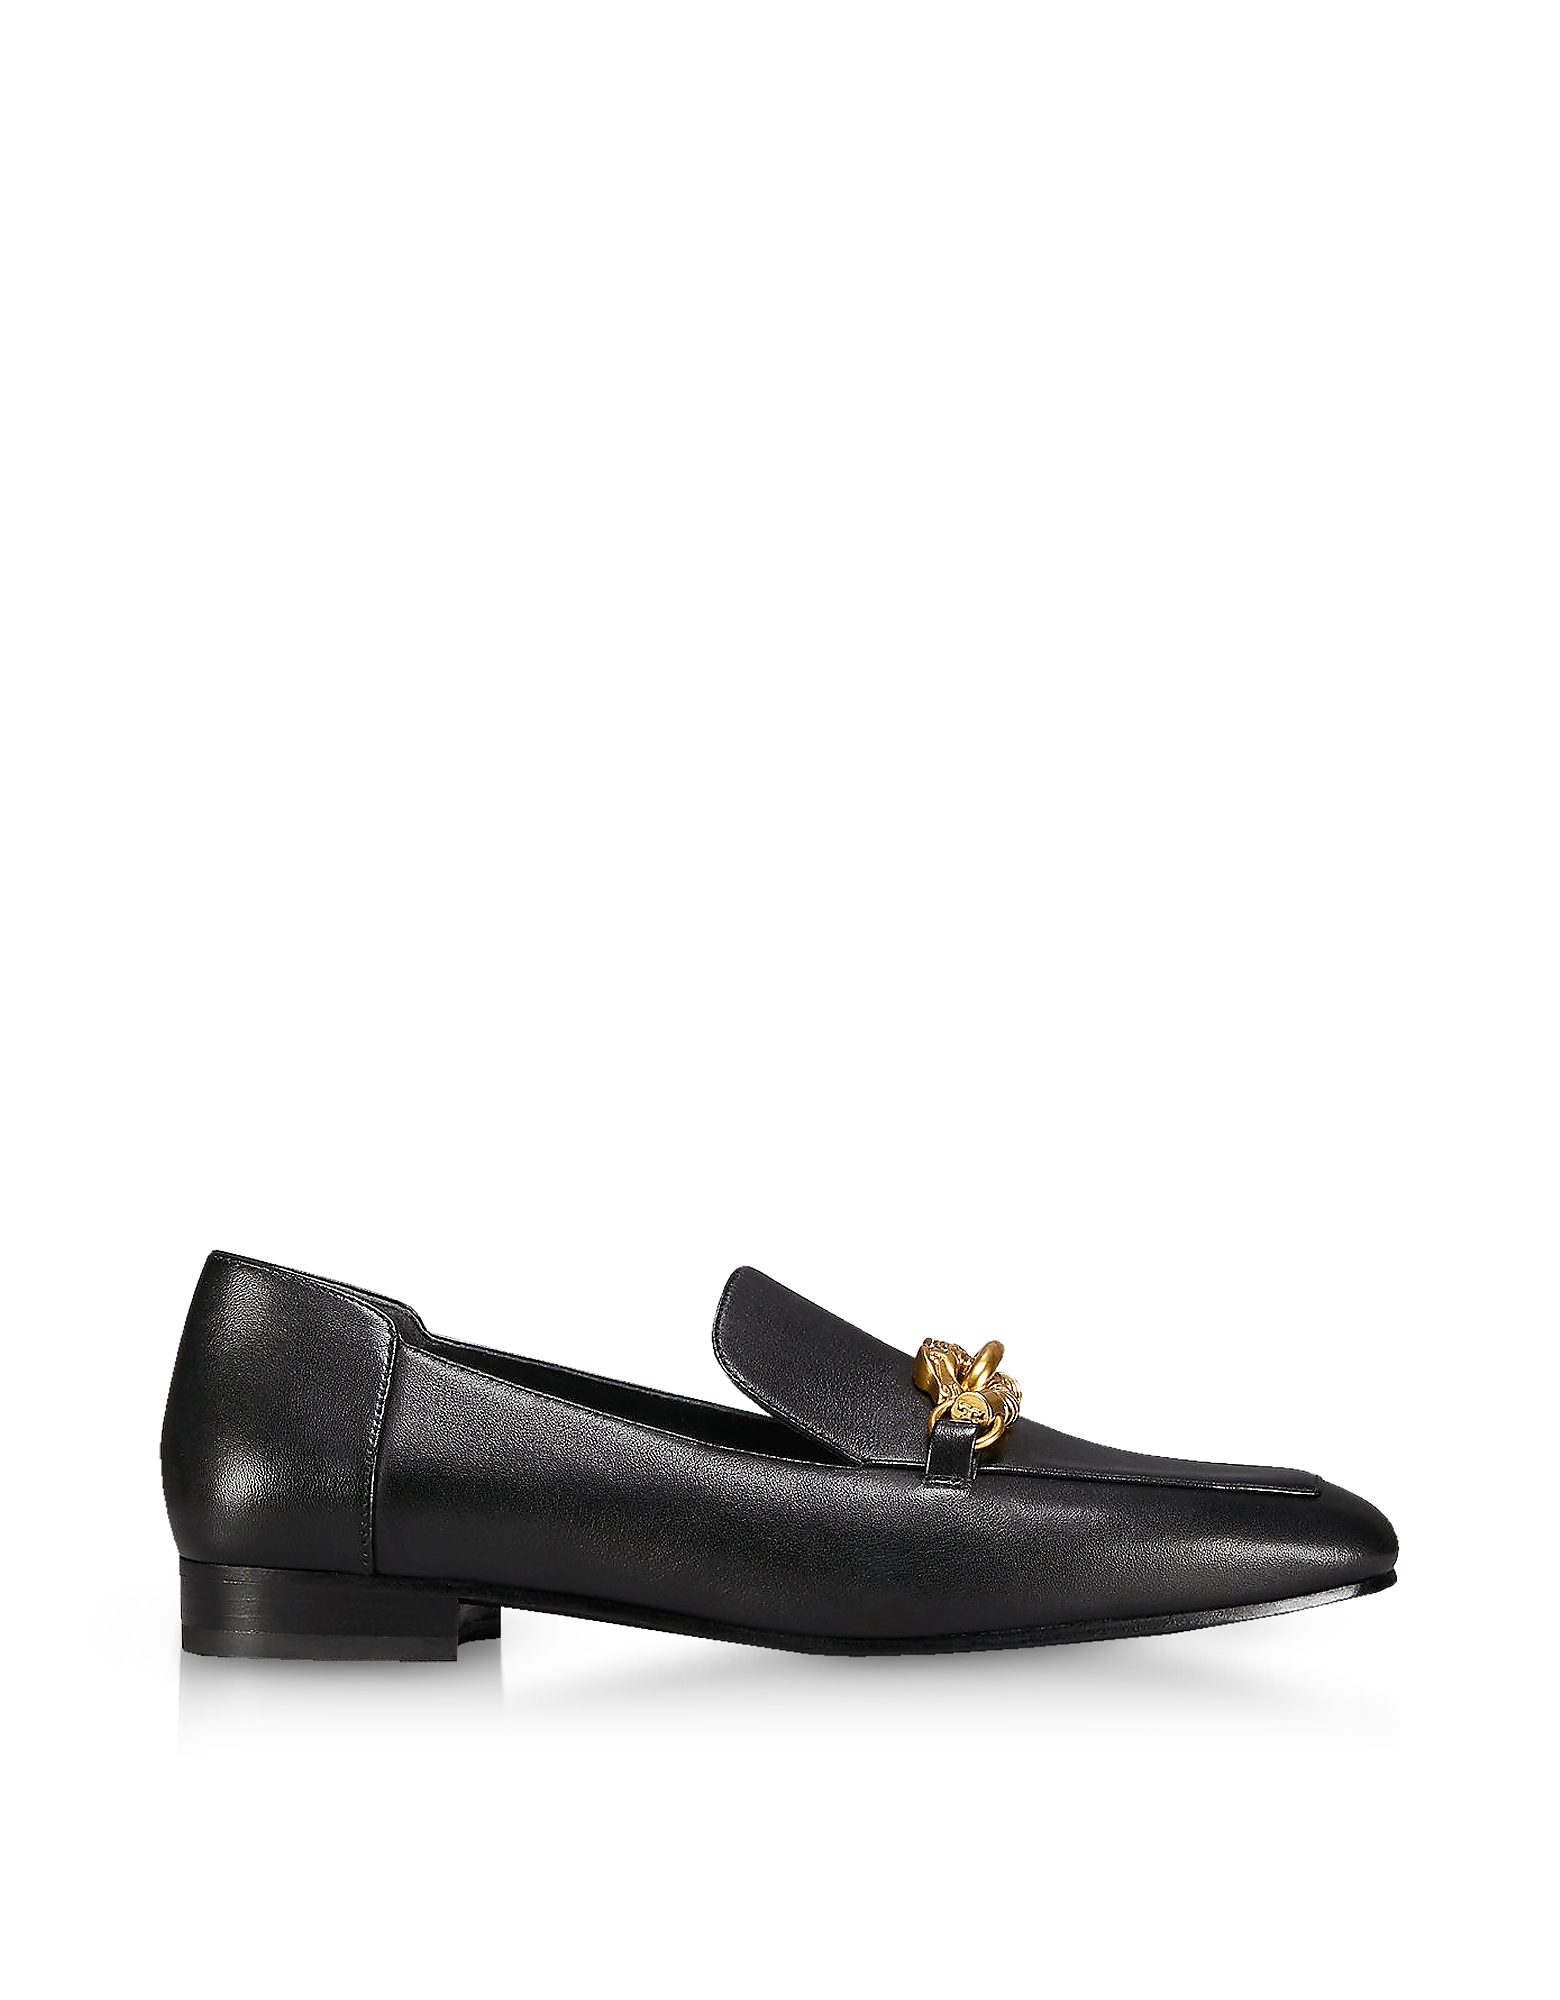 Tory Burch Shoes, Perfect Black Leather Jessa Loafers